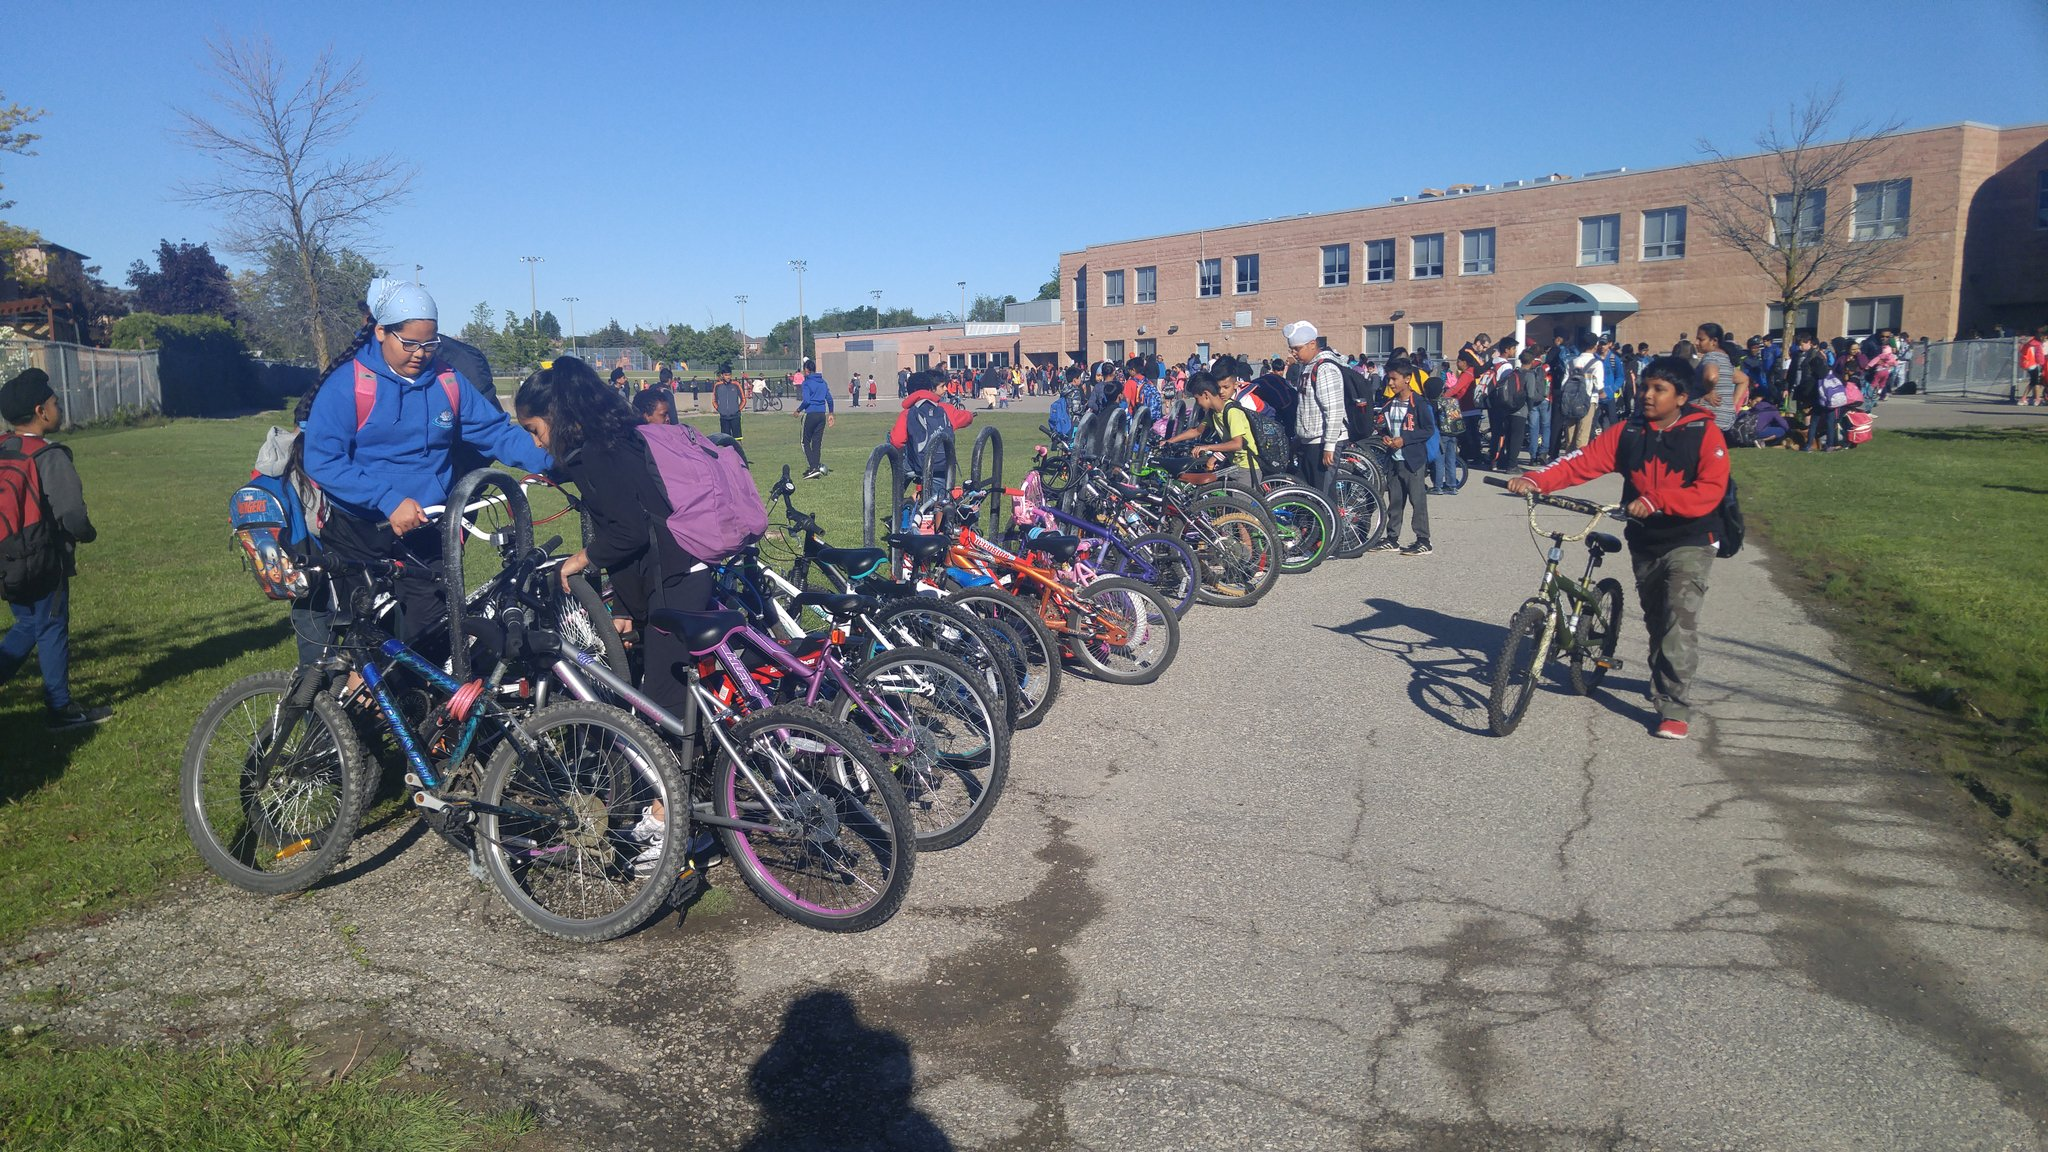 Congratulations! @rjlee_ps beat last year's record with 131 cyclists (19% #modeshare ) on the final day of #biketoschoolweek #bikebrampton https://t.co/hNORc2RUjZ